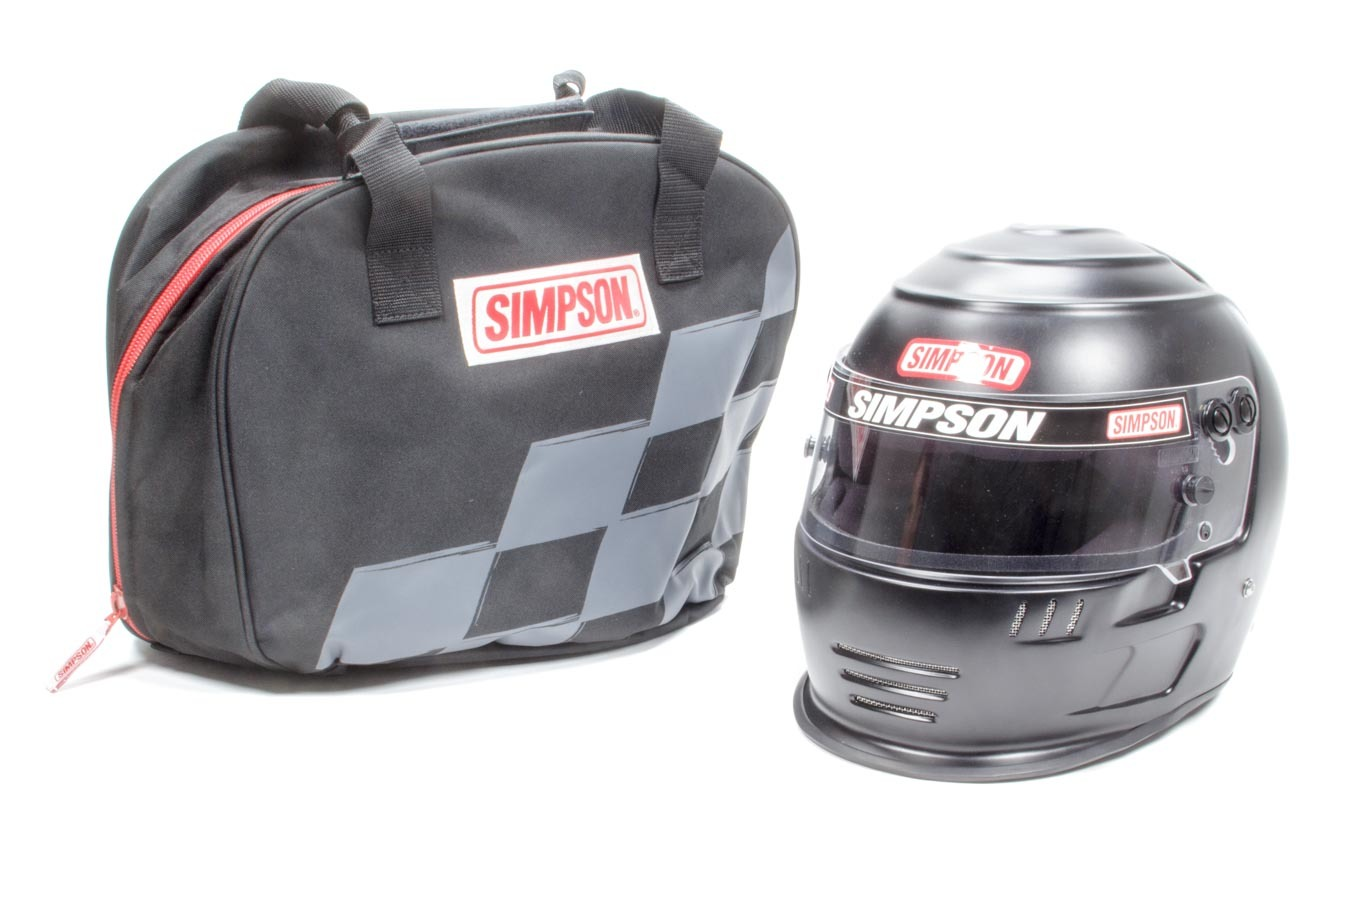 Simpson 6707148 Helmet, Speedway Shark, Snell SA2015, Head and Neck Support Ready, Flat Black, Size 7-1/4, Each